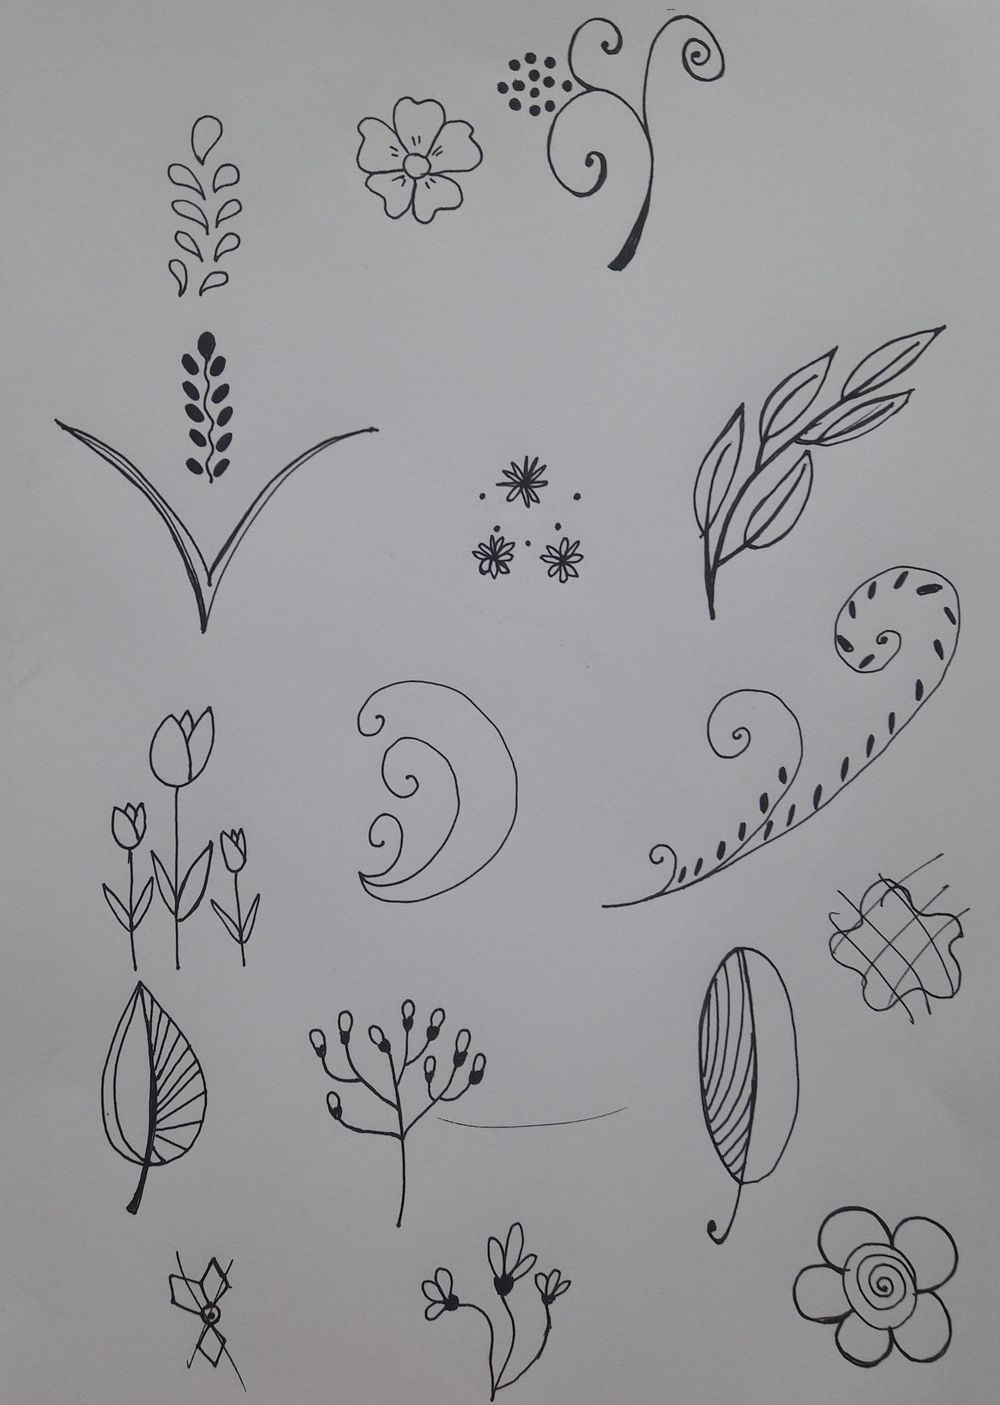 My surface pattern design - image 1 - student project